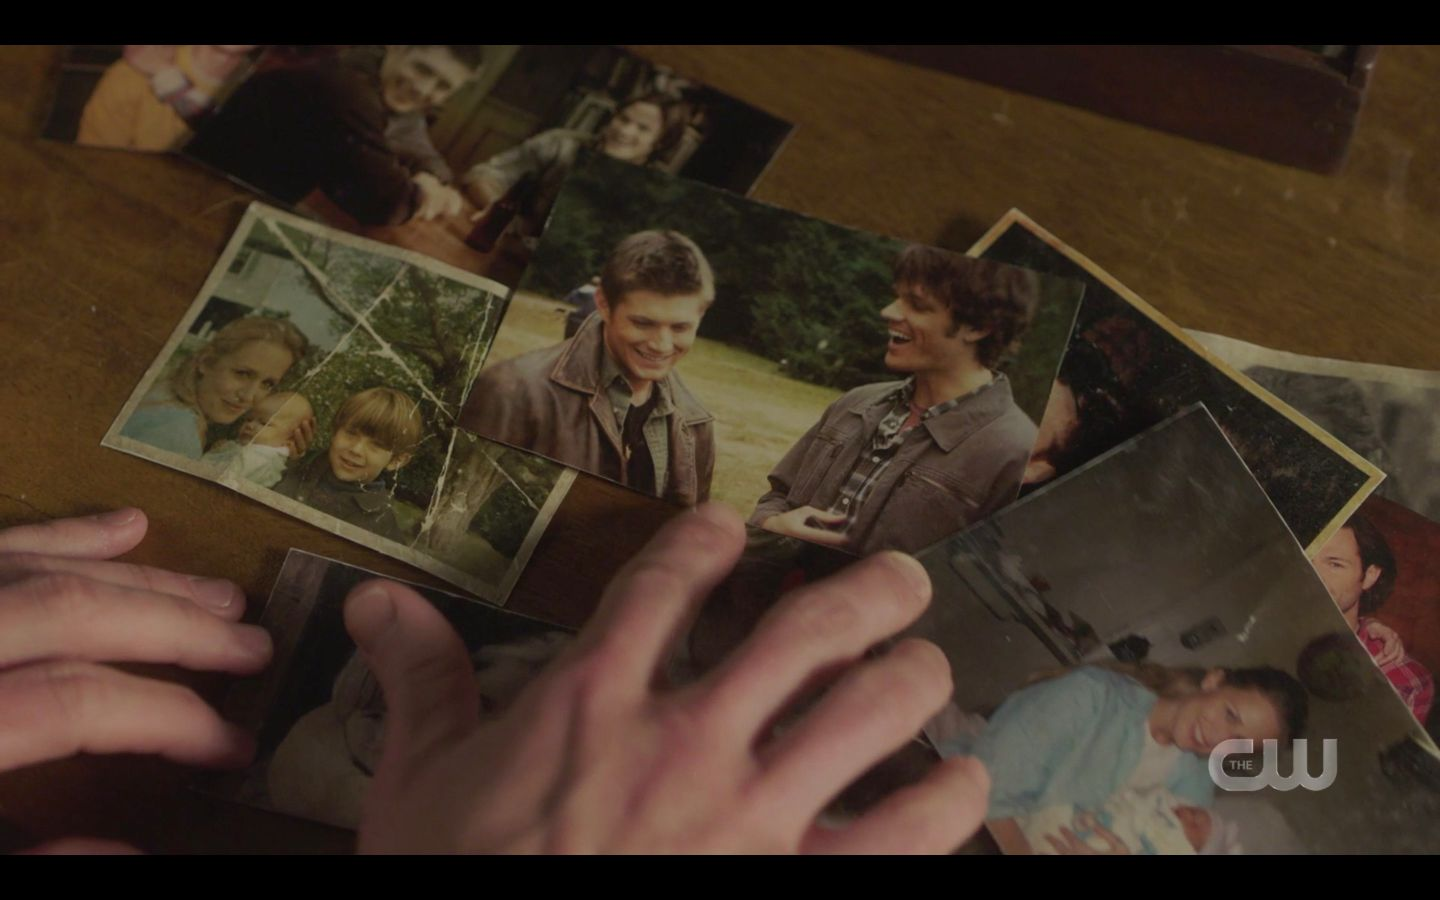 Sam Winchester with old photos of him and dean with Mary SPN 14.18